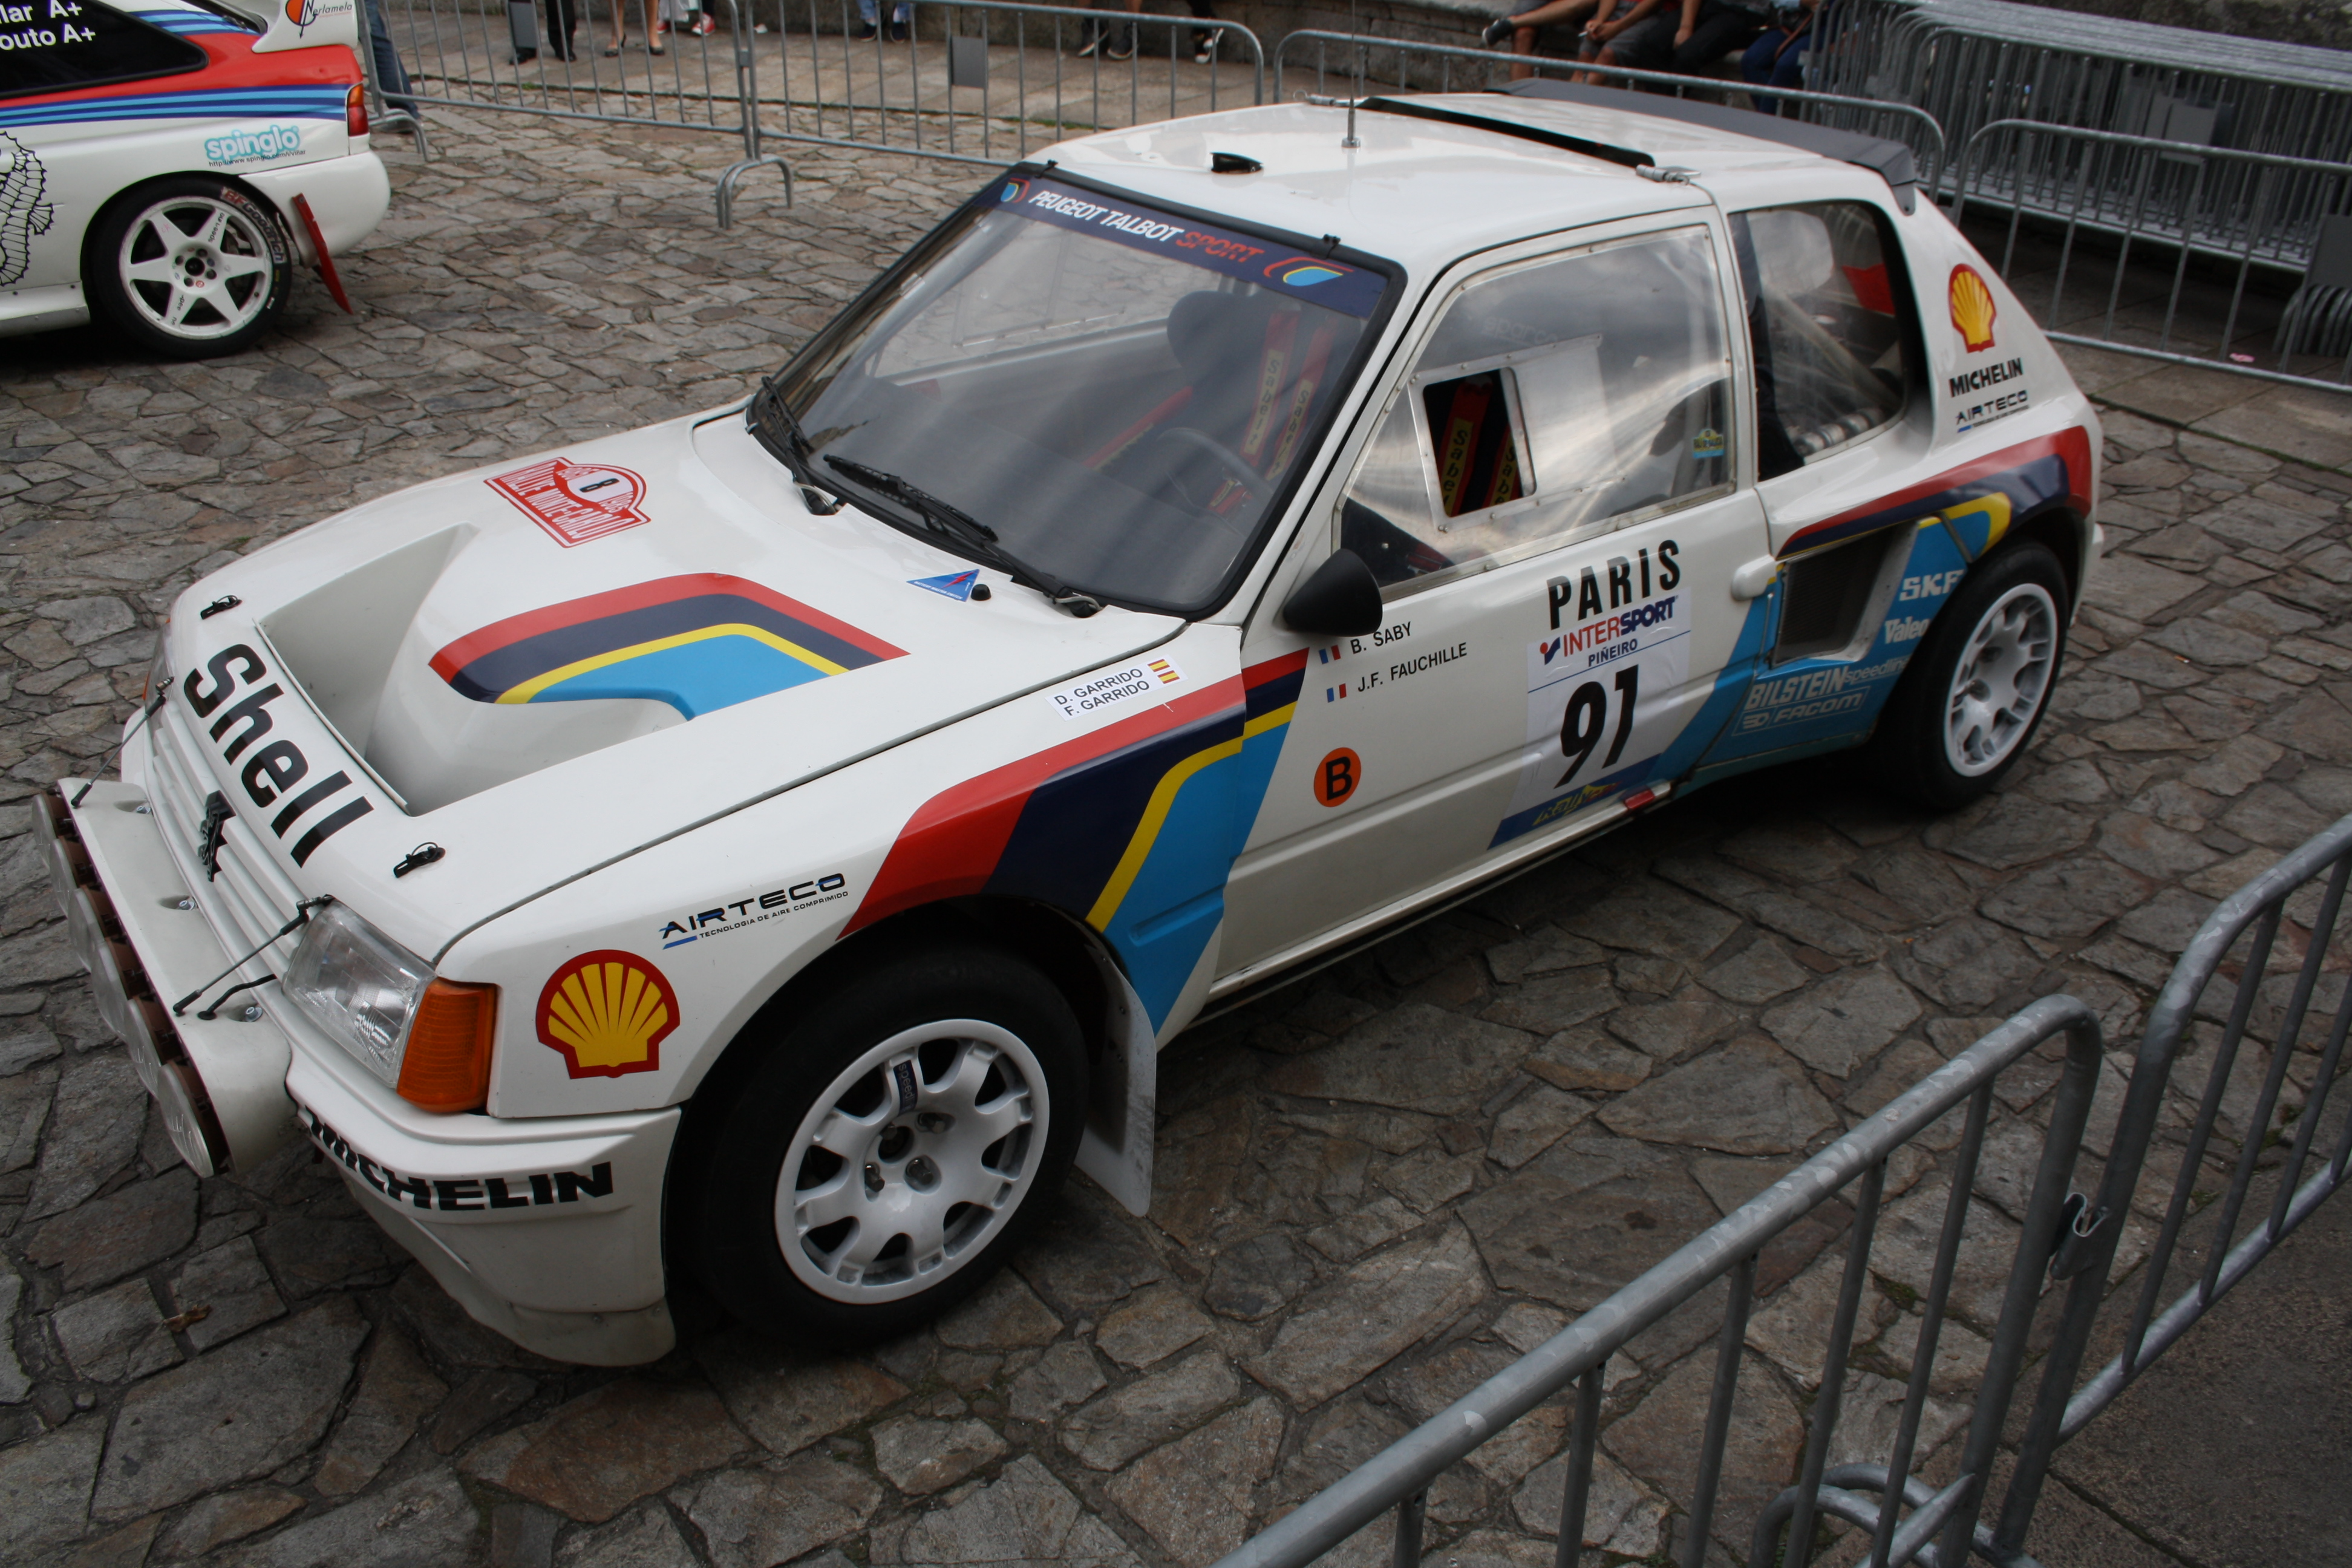 Gti Rally Car For Sale